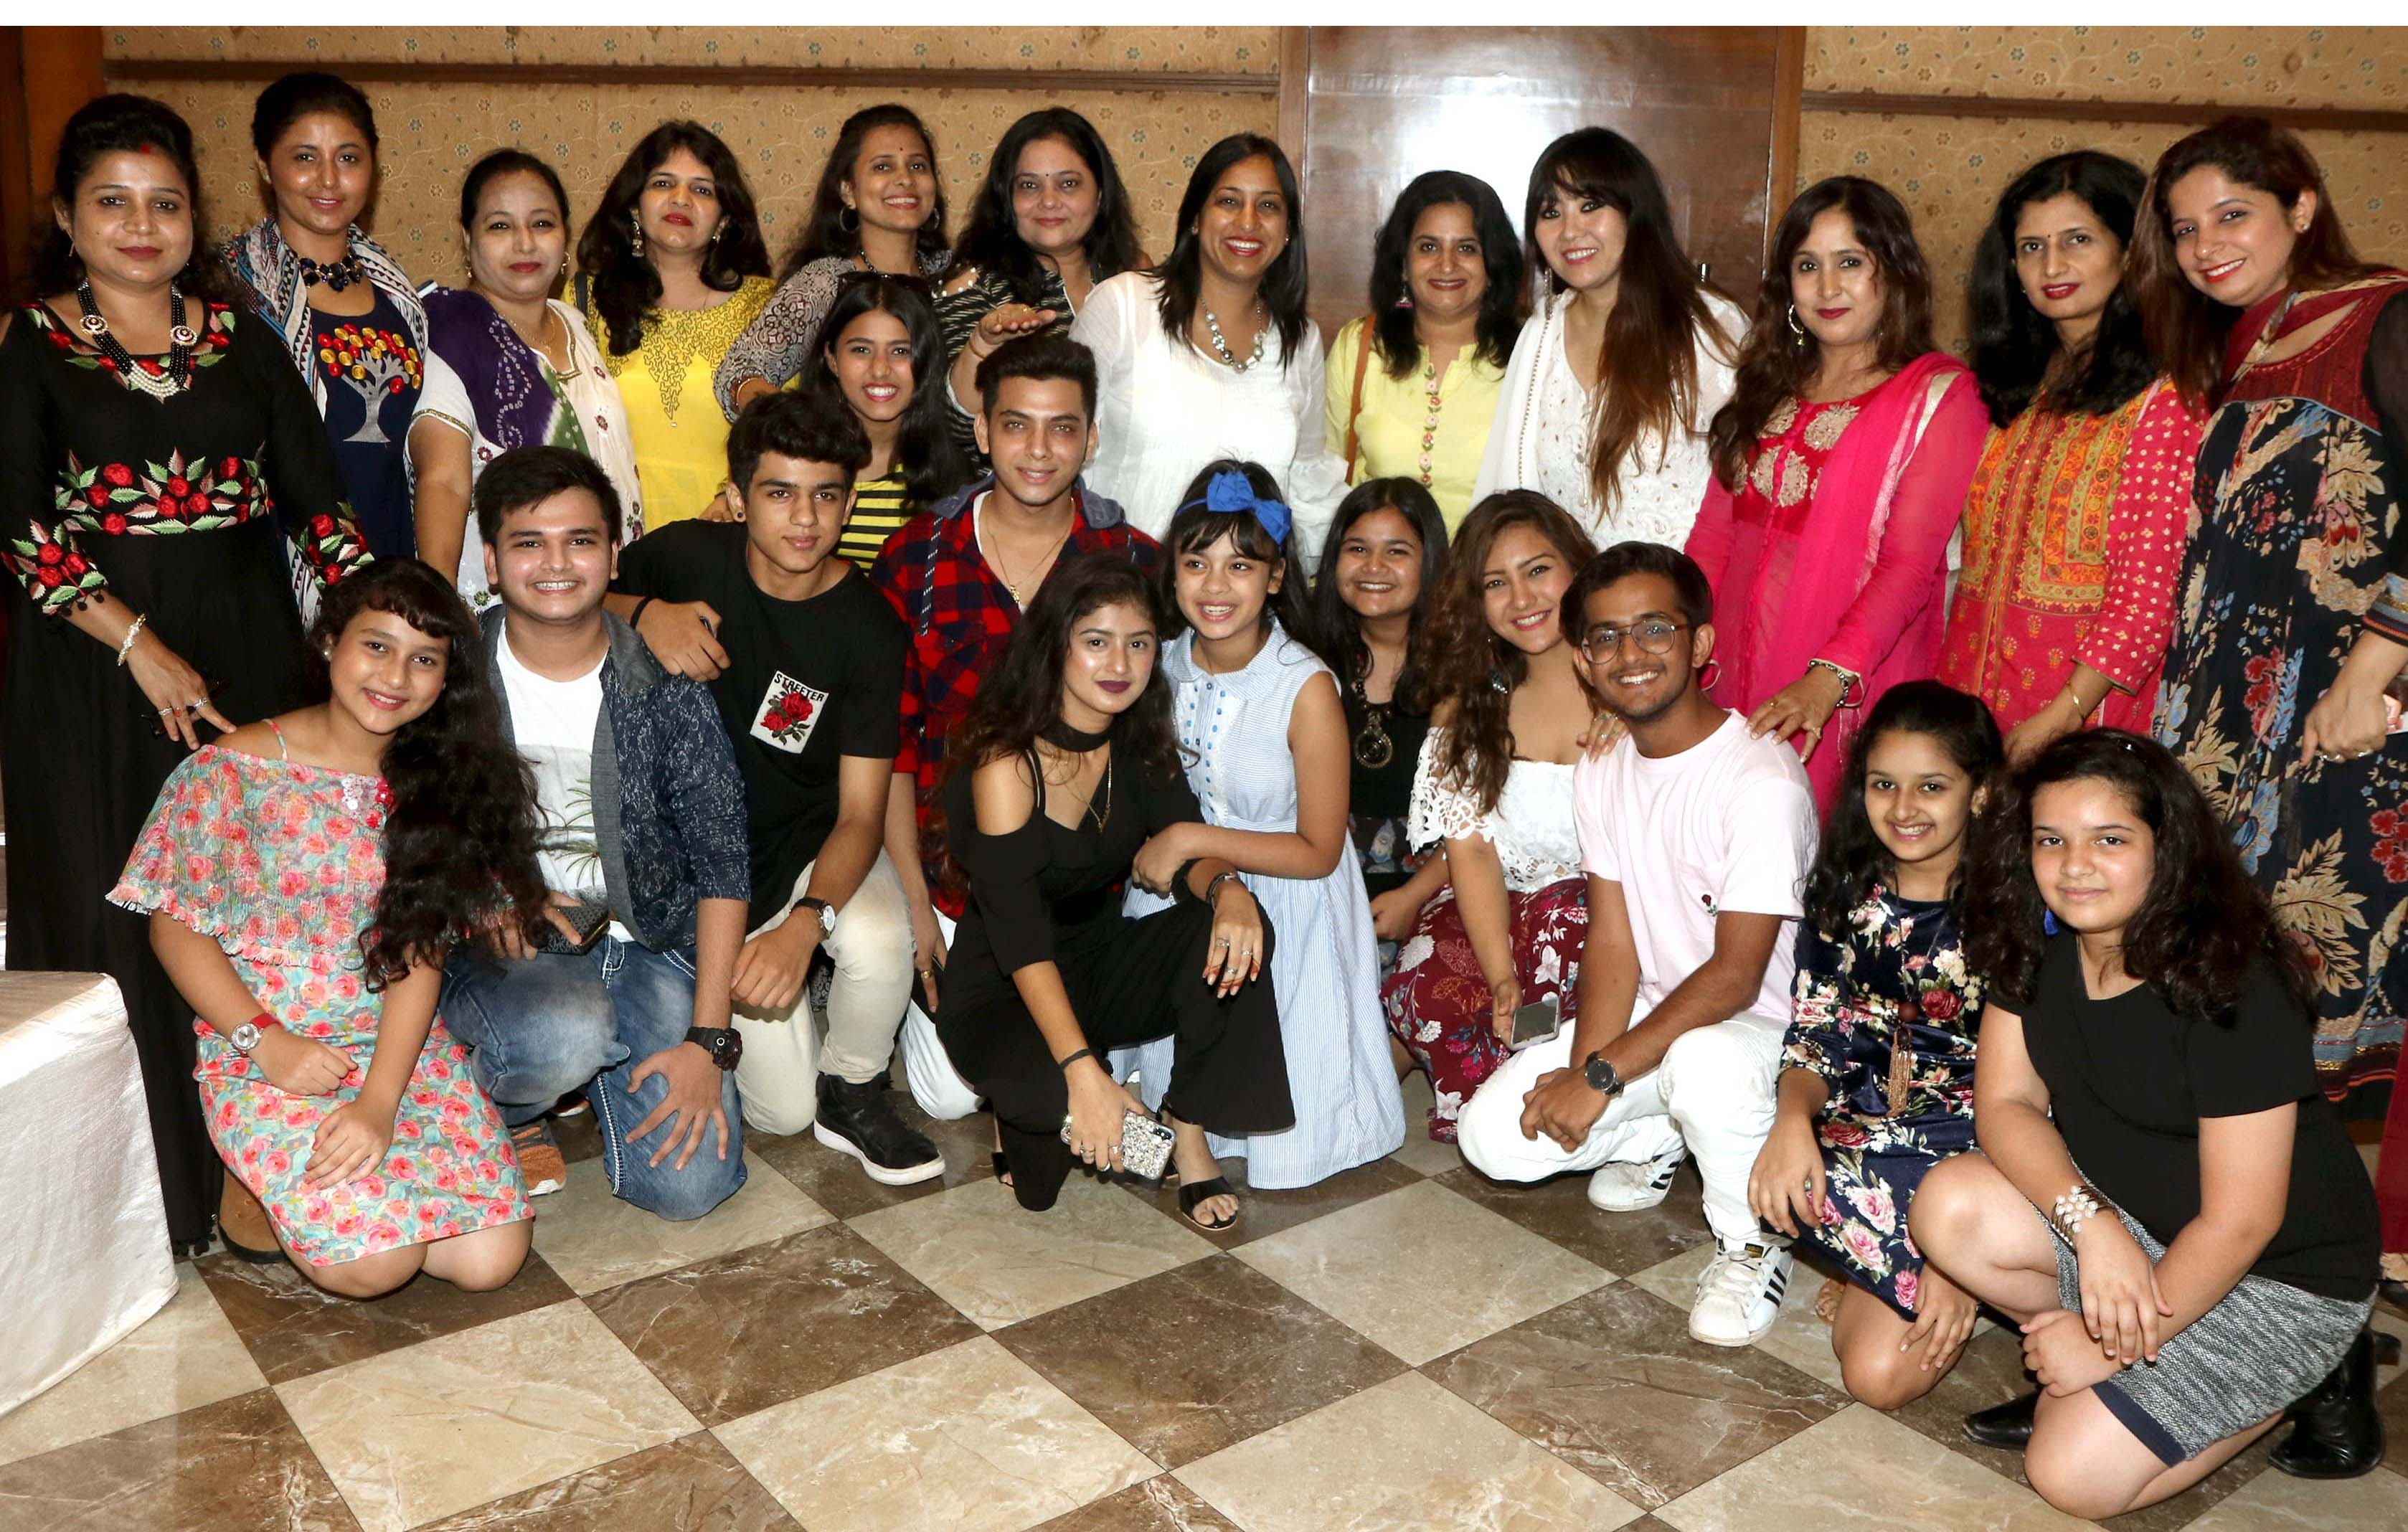 TV Actors from different serials celebrated Mother's Day at Peninsula Grand Hotel.